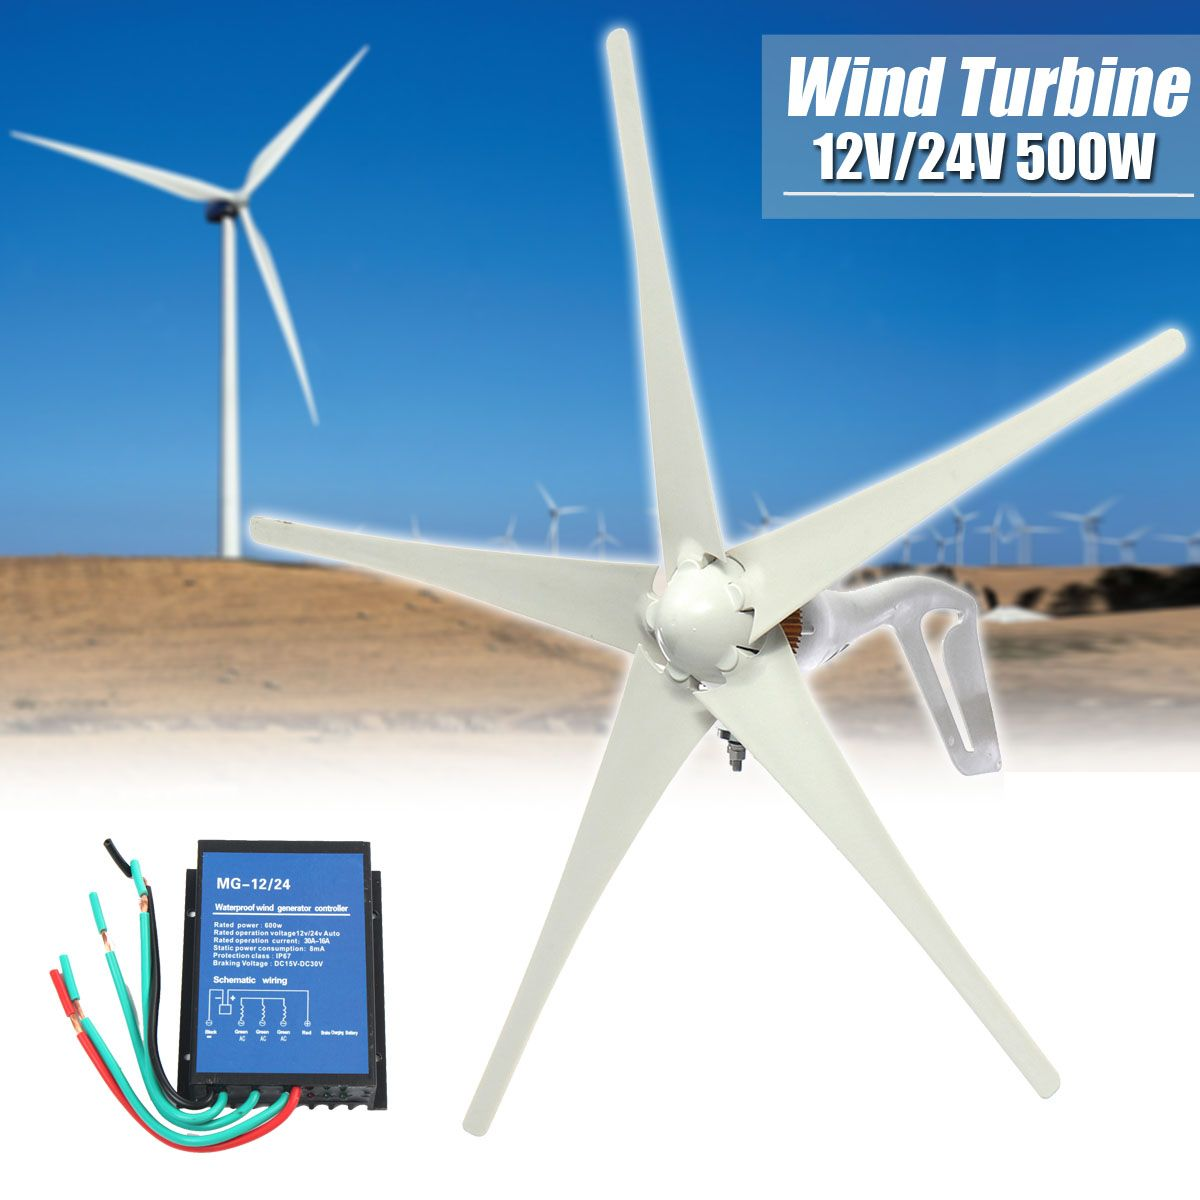 500W 12V Five Wind Blades Miniature Horizontal Wind Turbines Wind Generator With Controller Fit for Residential Home